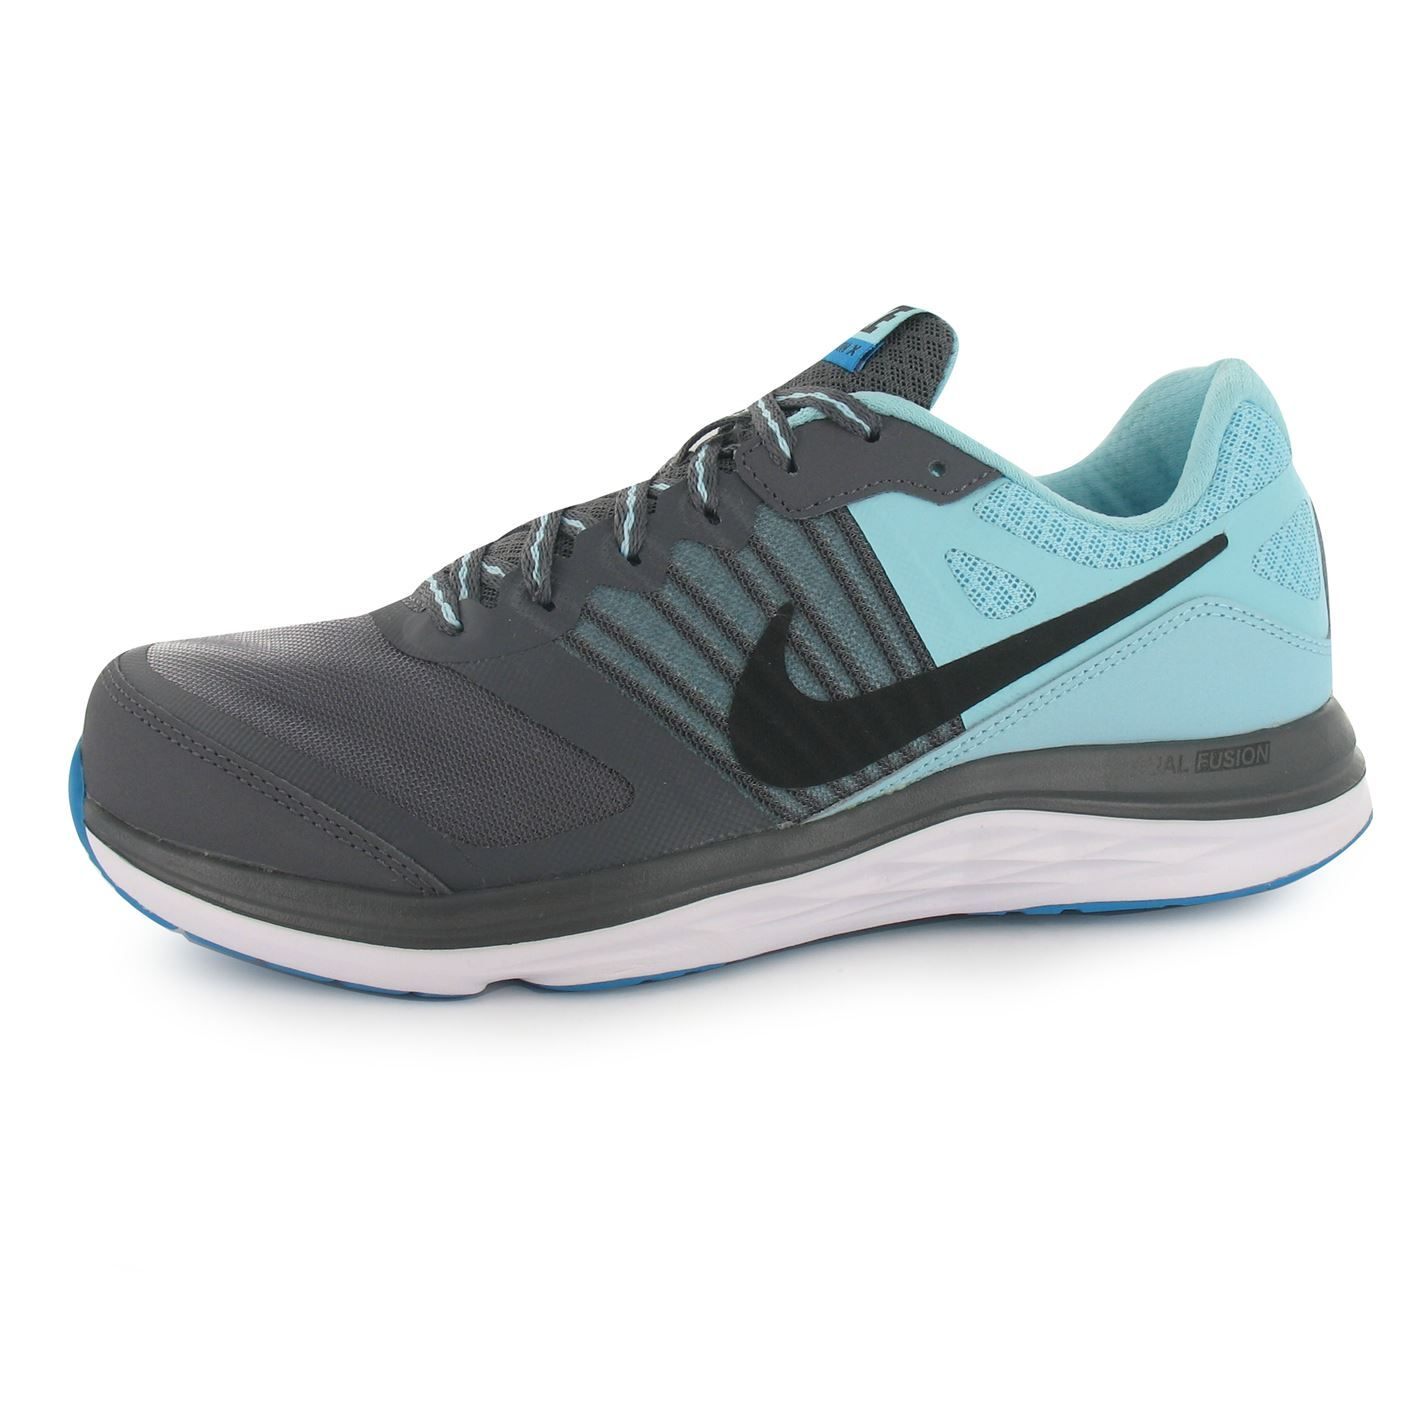 Nike Dual Fusion X Ladies Running Shoes